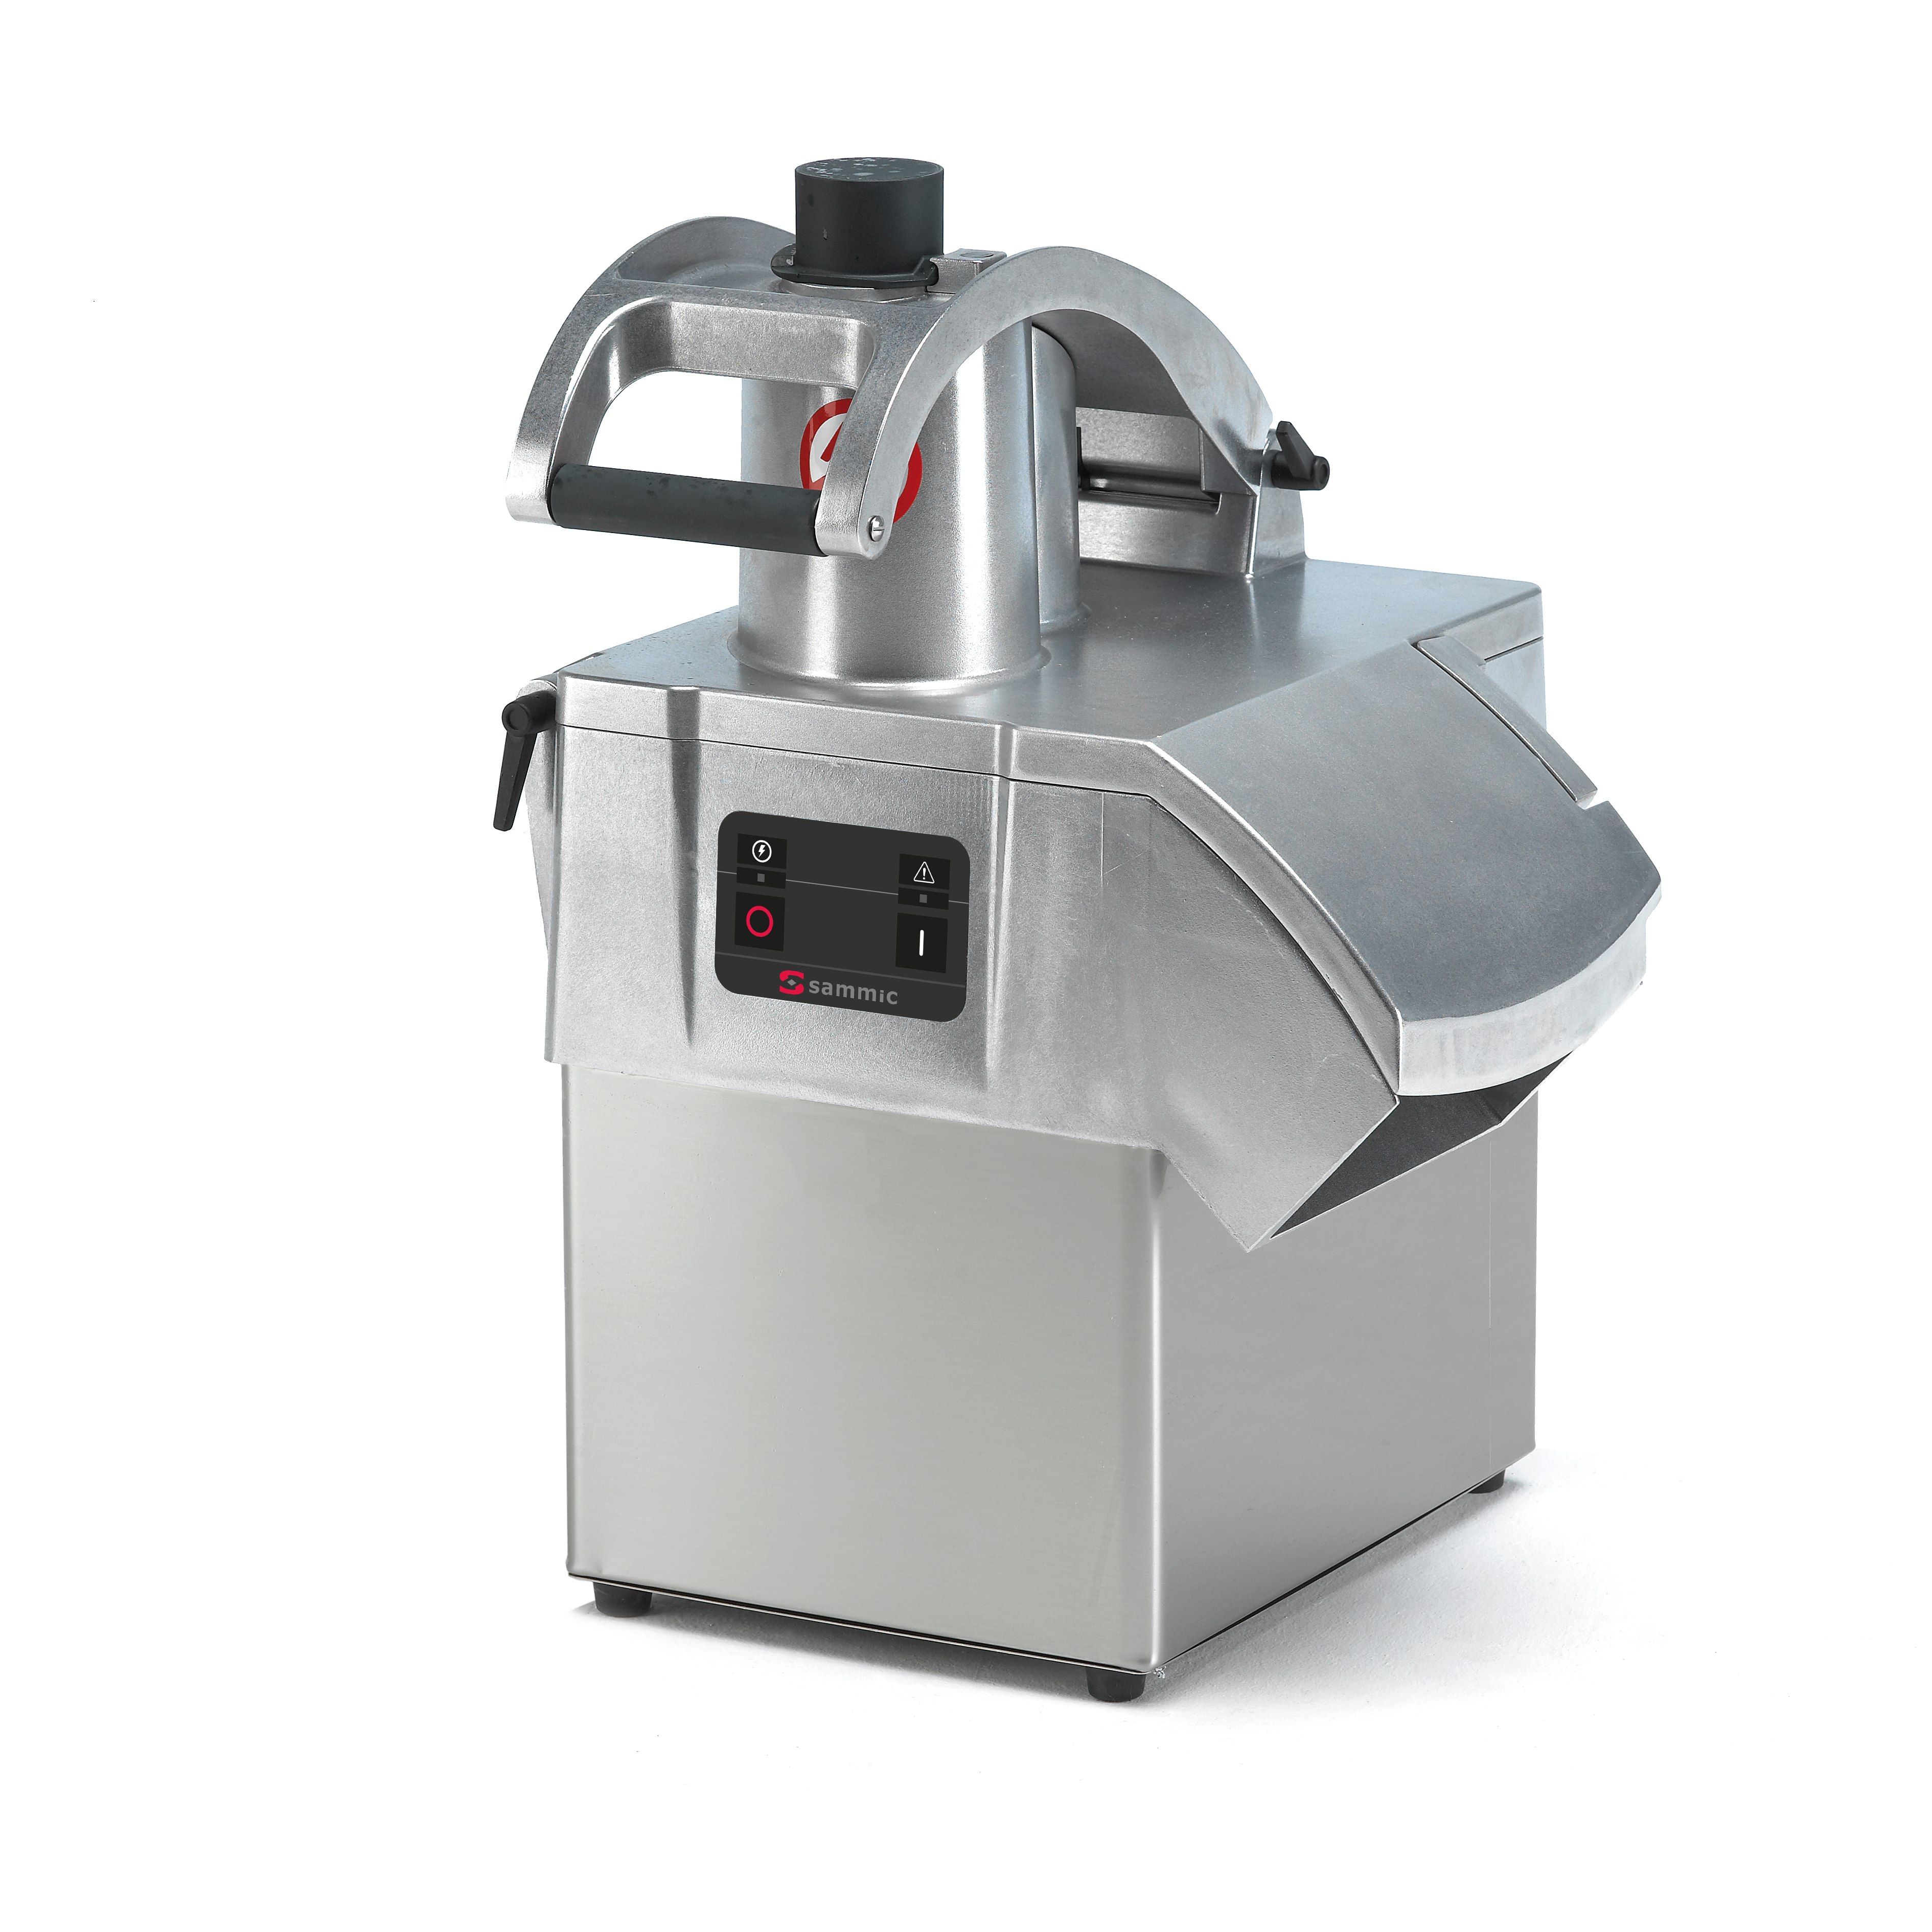 Sammic CA-31 Veg-Prep Machine + Disc Package (6) 1050700/6